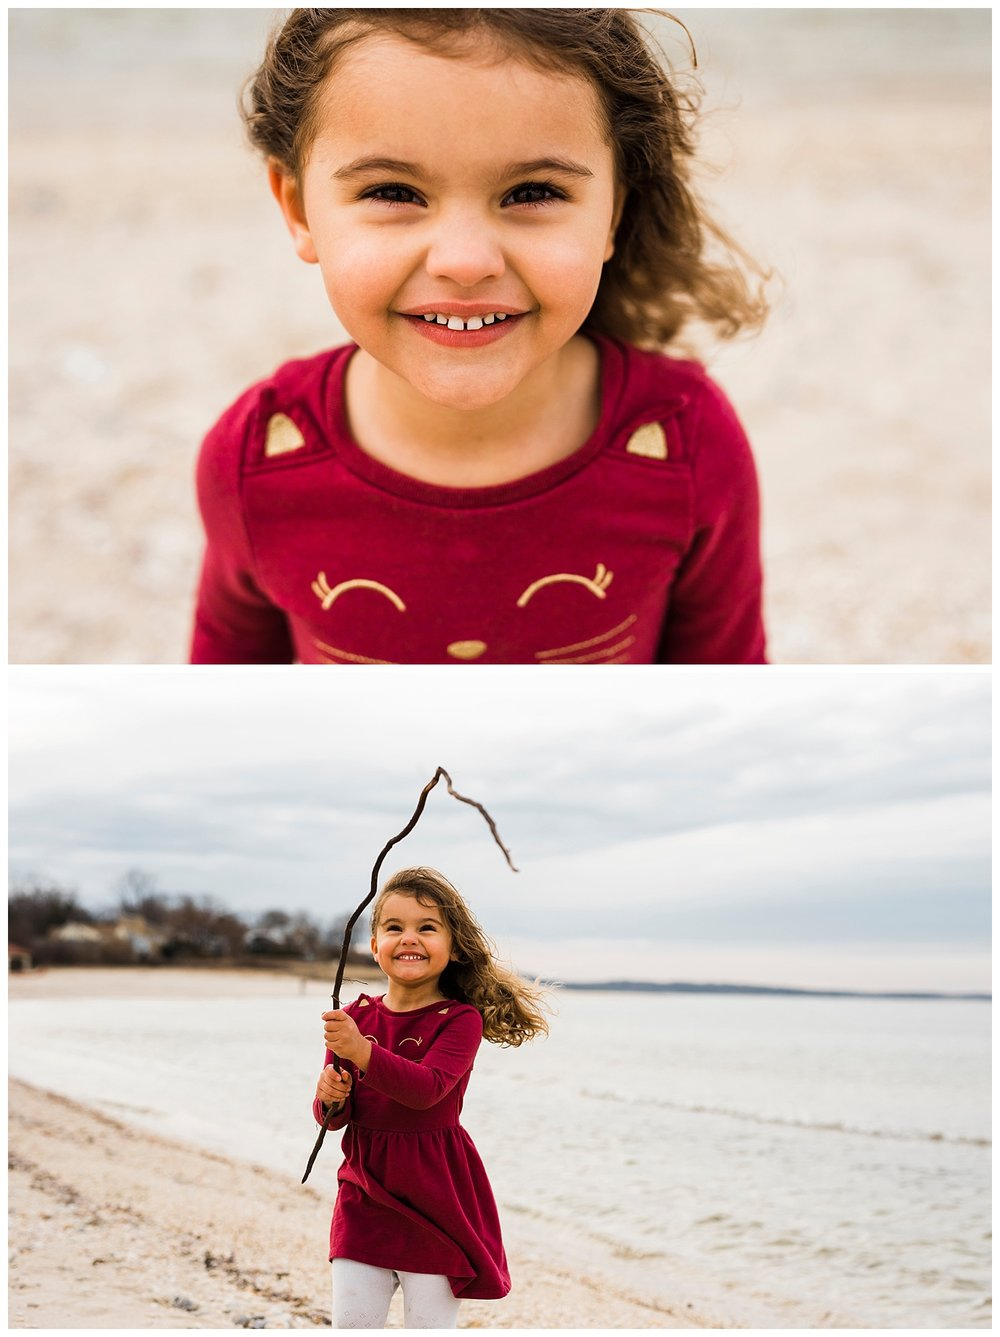 Crab_Meadow_Beach_Portraits_Northport_Wedding_Photography_Long_Island_Photographer_Family_001.jpg